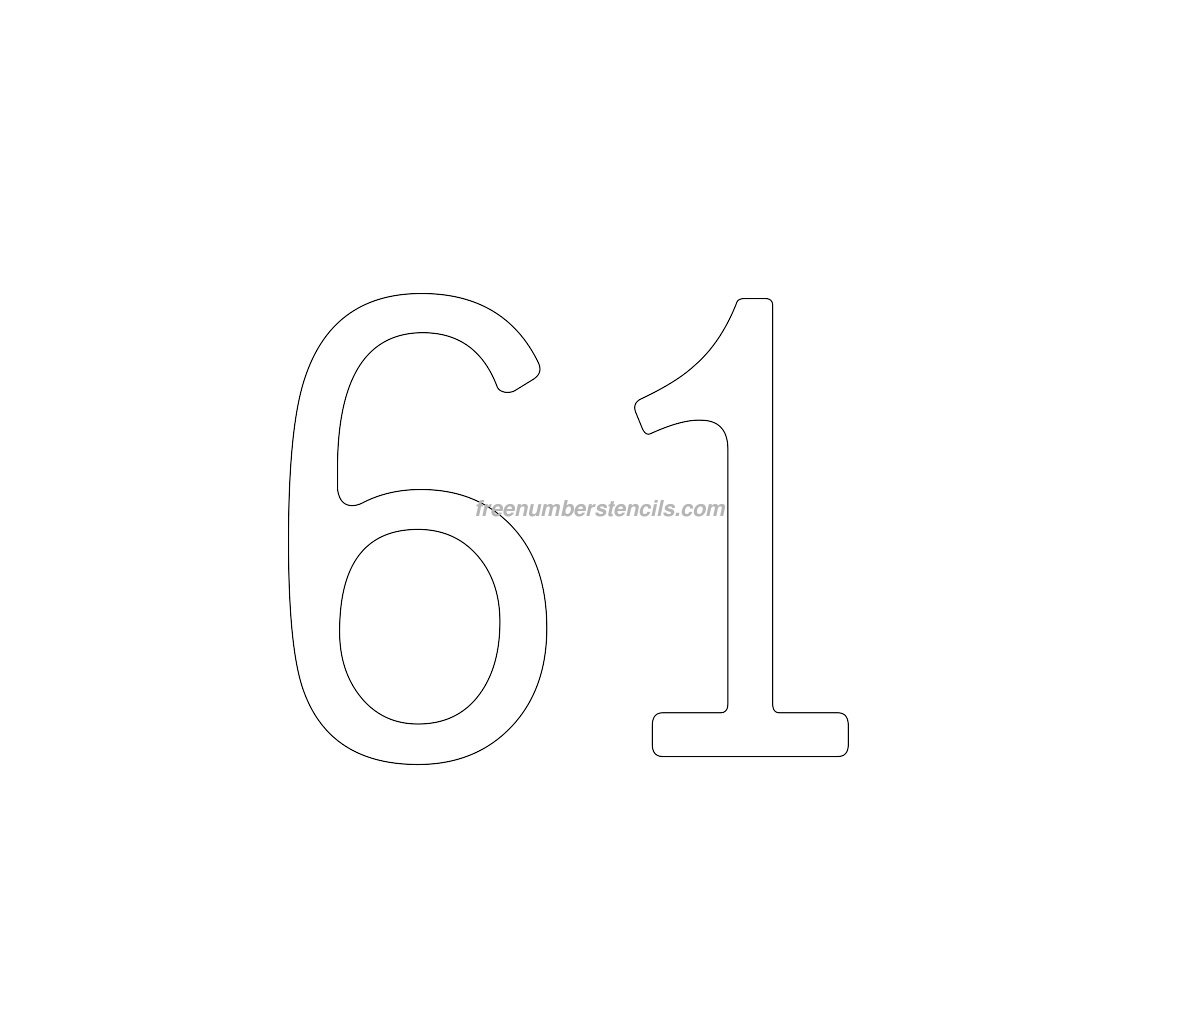 number 9 cake template - cake free 61 number stencil